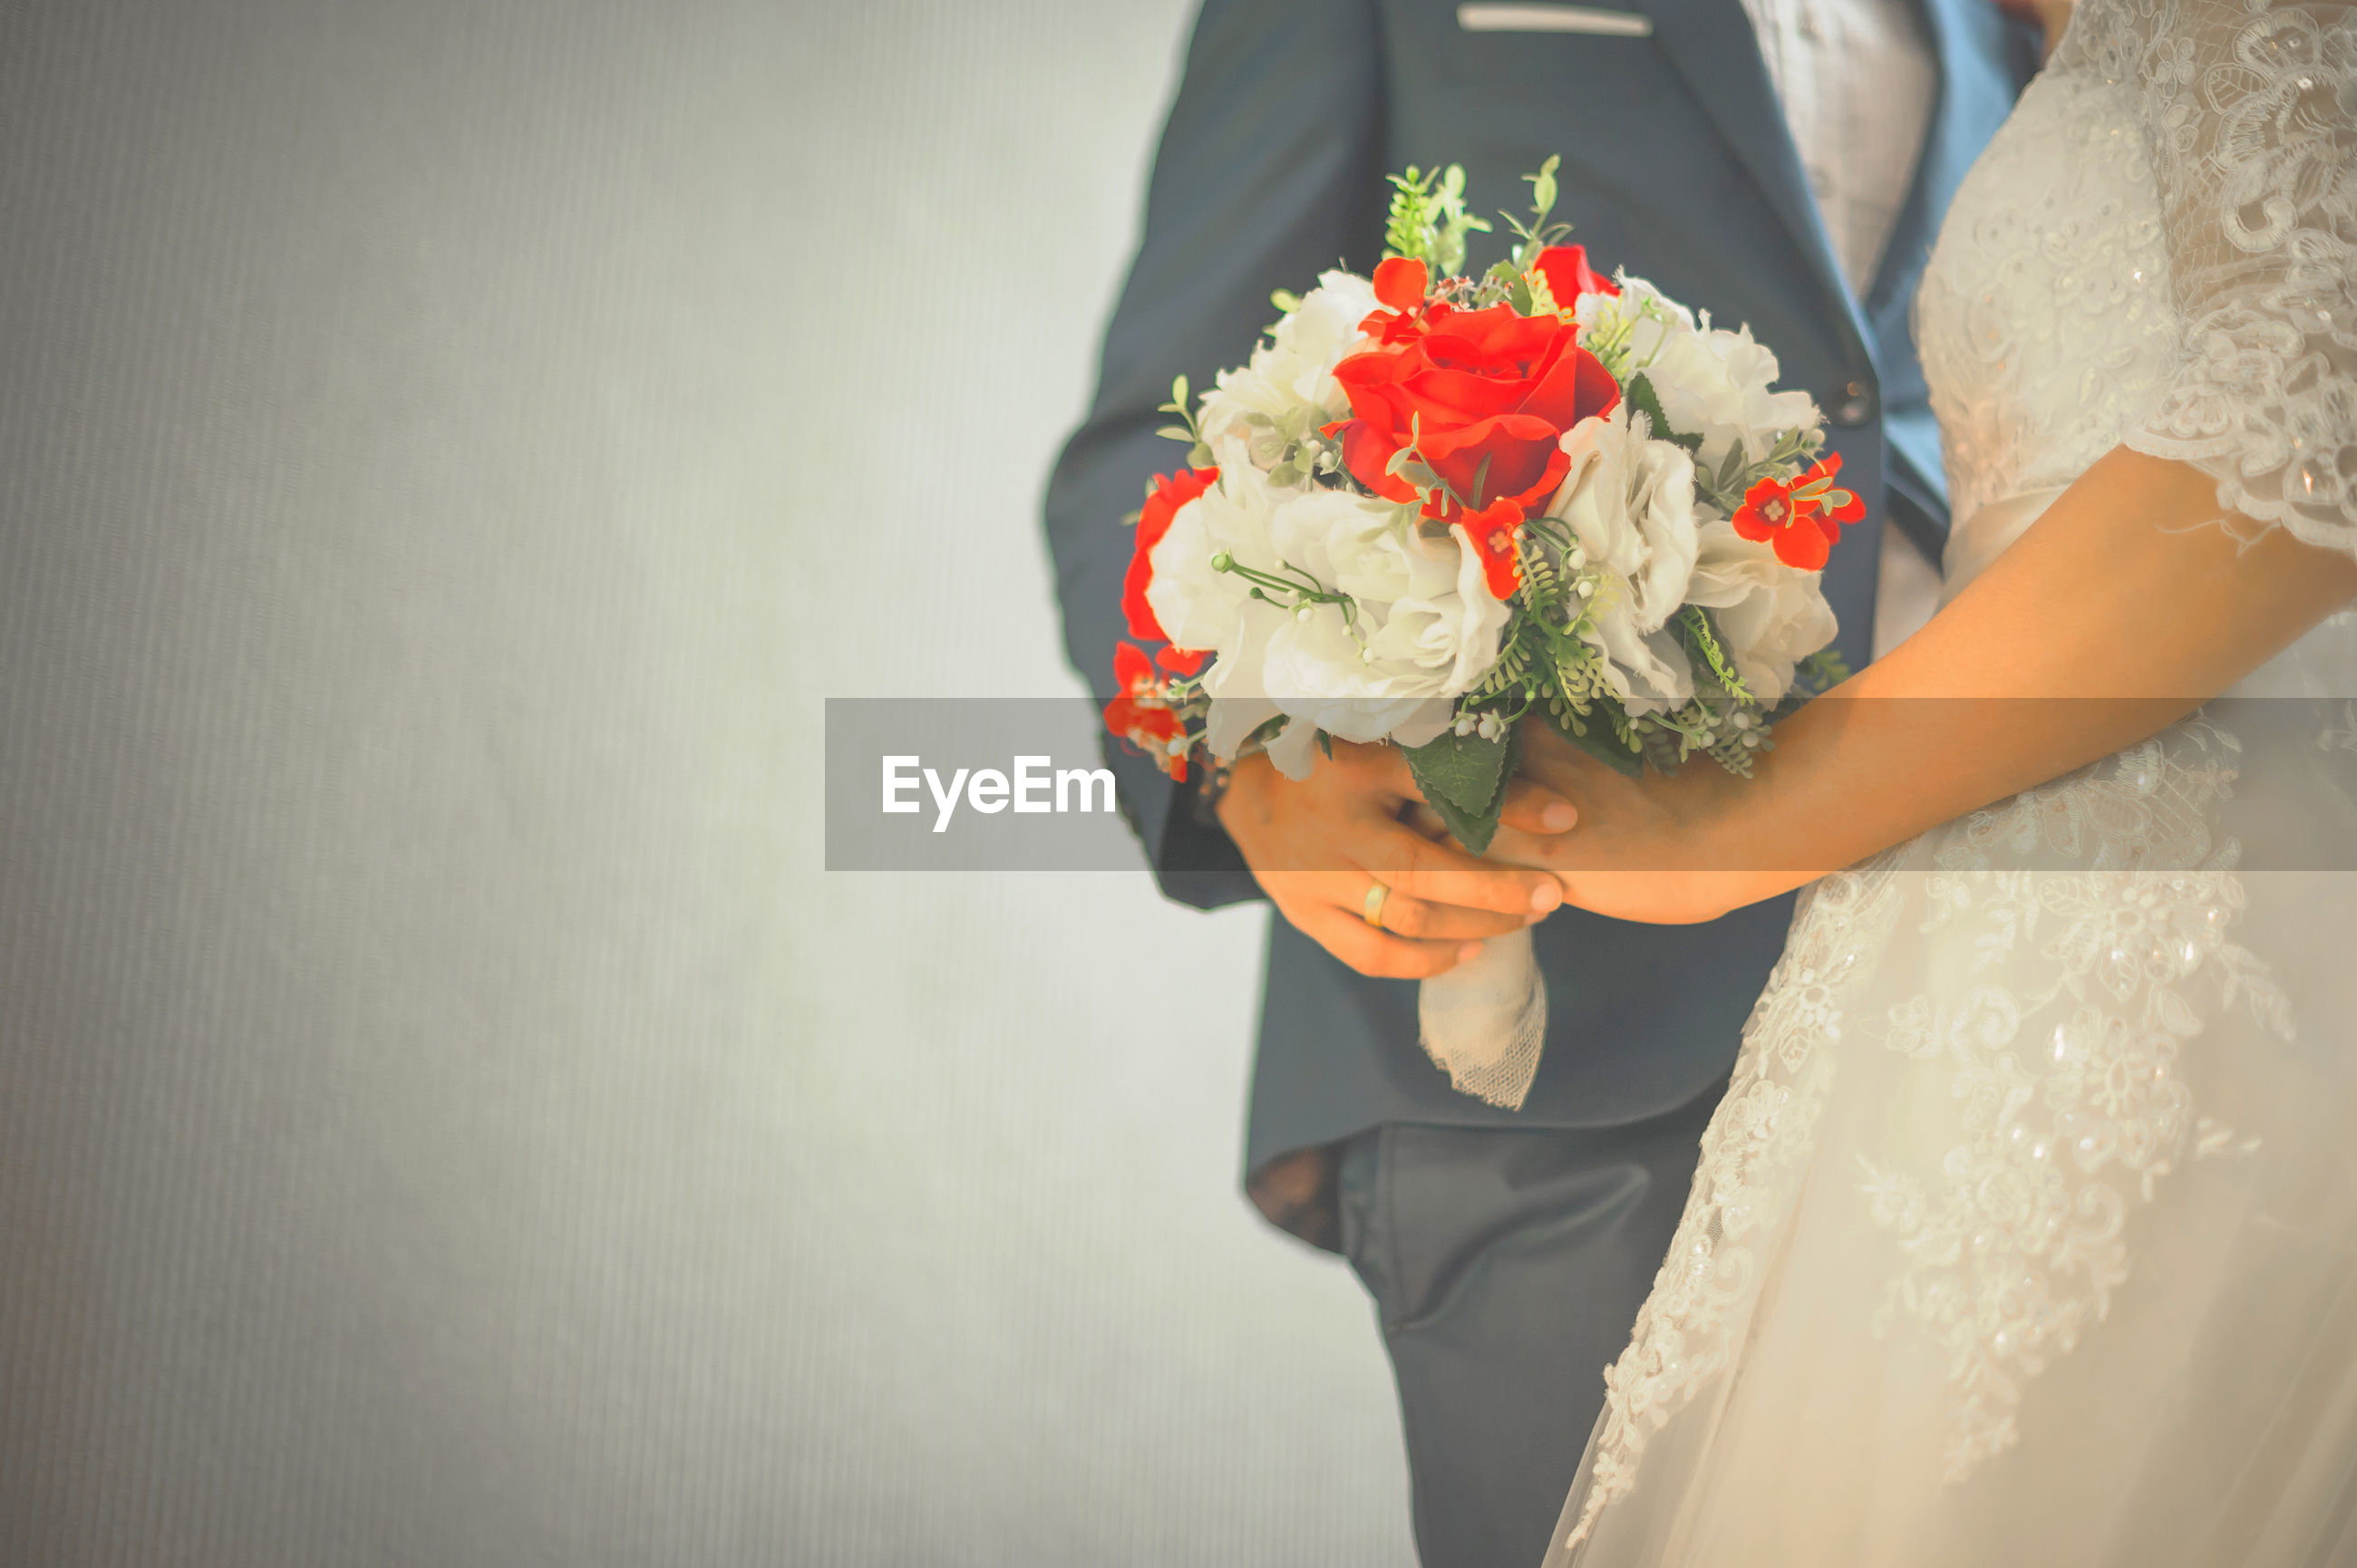 Midsection of bride and groom holding bouquet against white wall